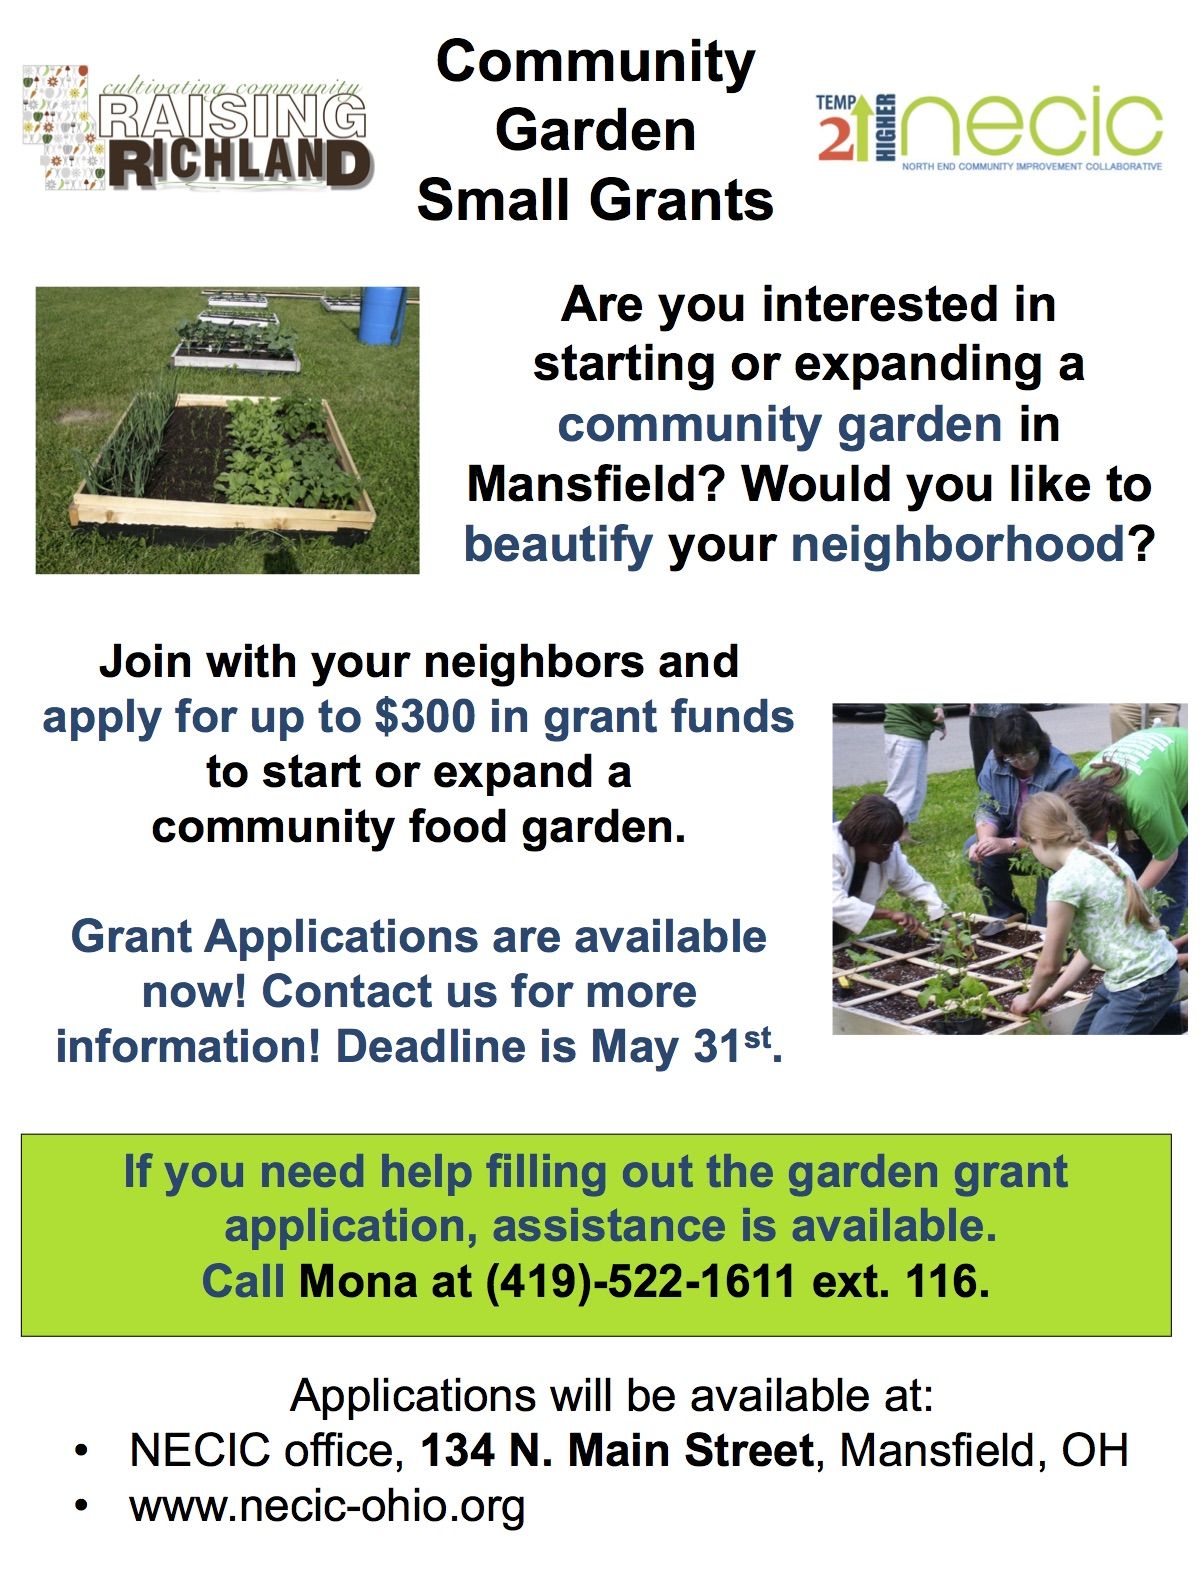 Community Garden Grants Available!